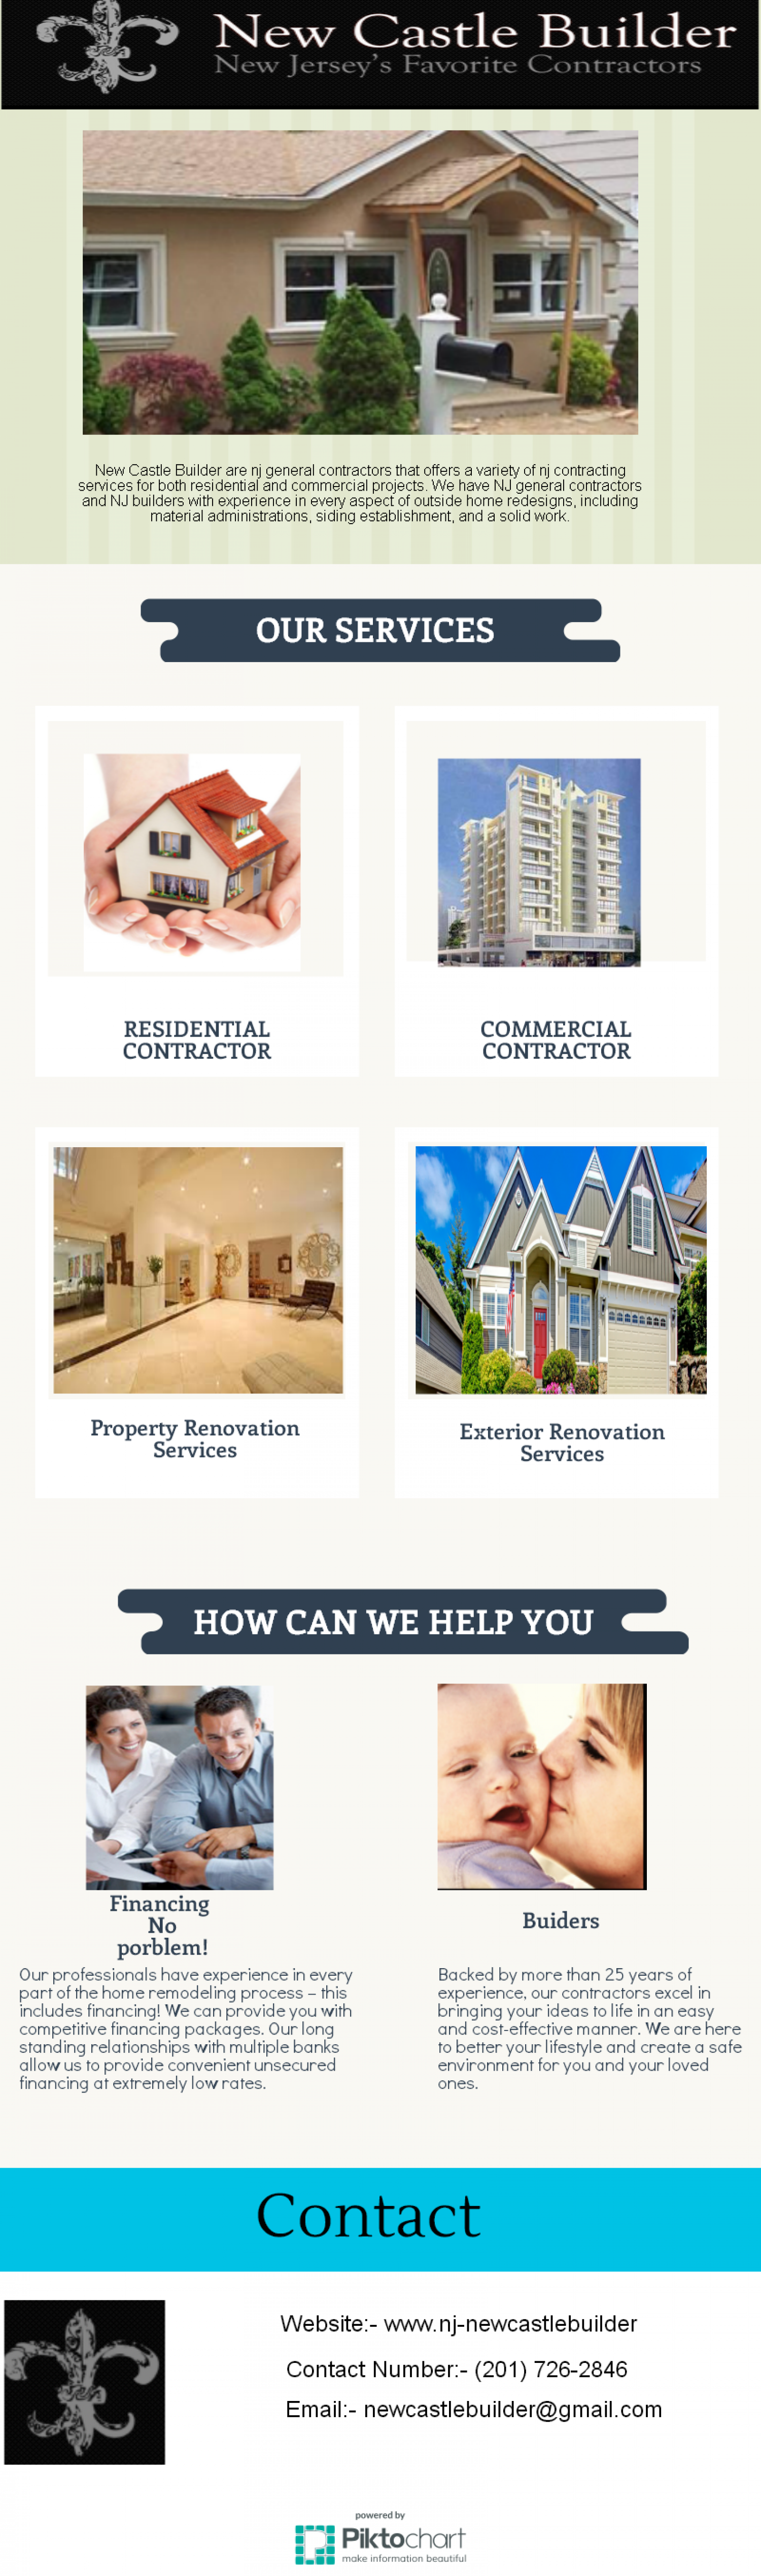 If you want to home improvement project remodel or new build you